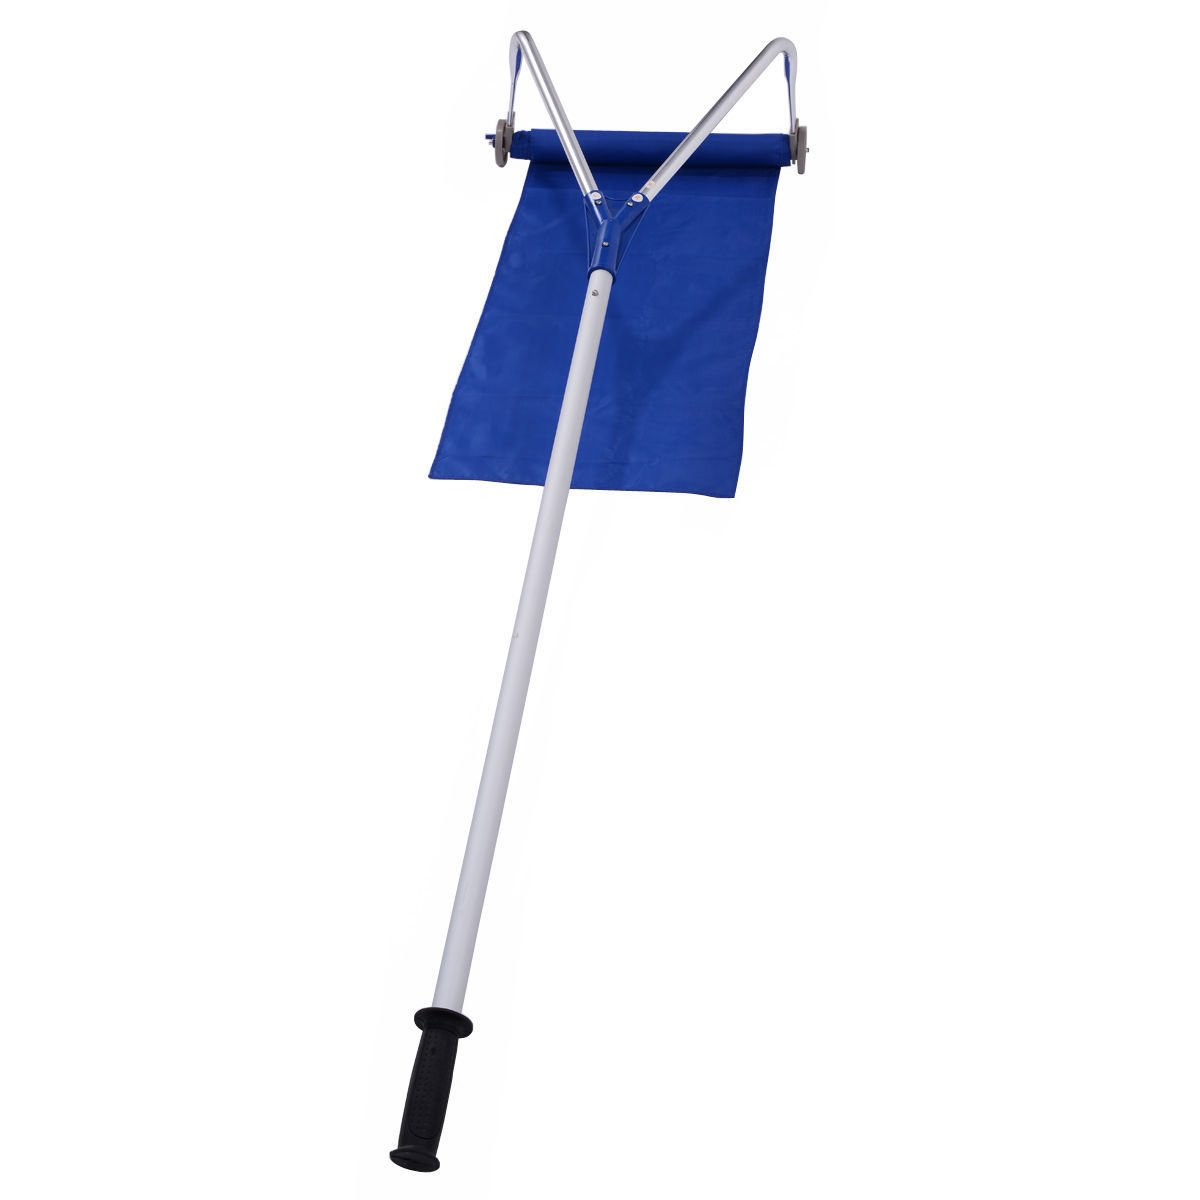 TimmyHouse Lightweight Roof Rake Snow Removal Tool 20FT Adjustable Telescoping Handle New by TimmyHouse